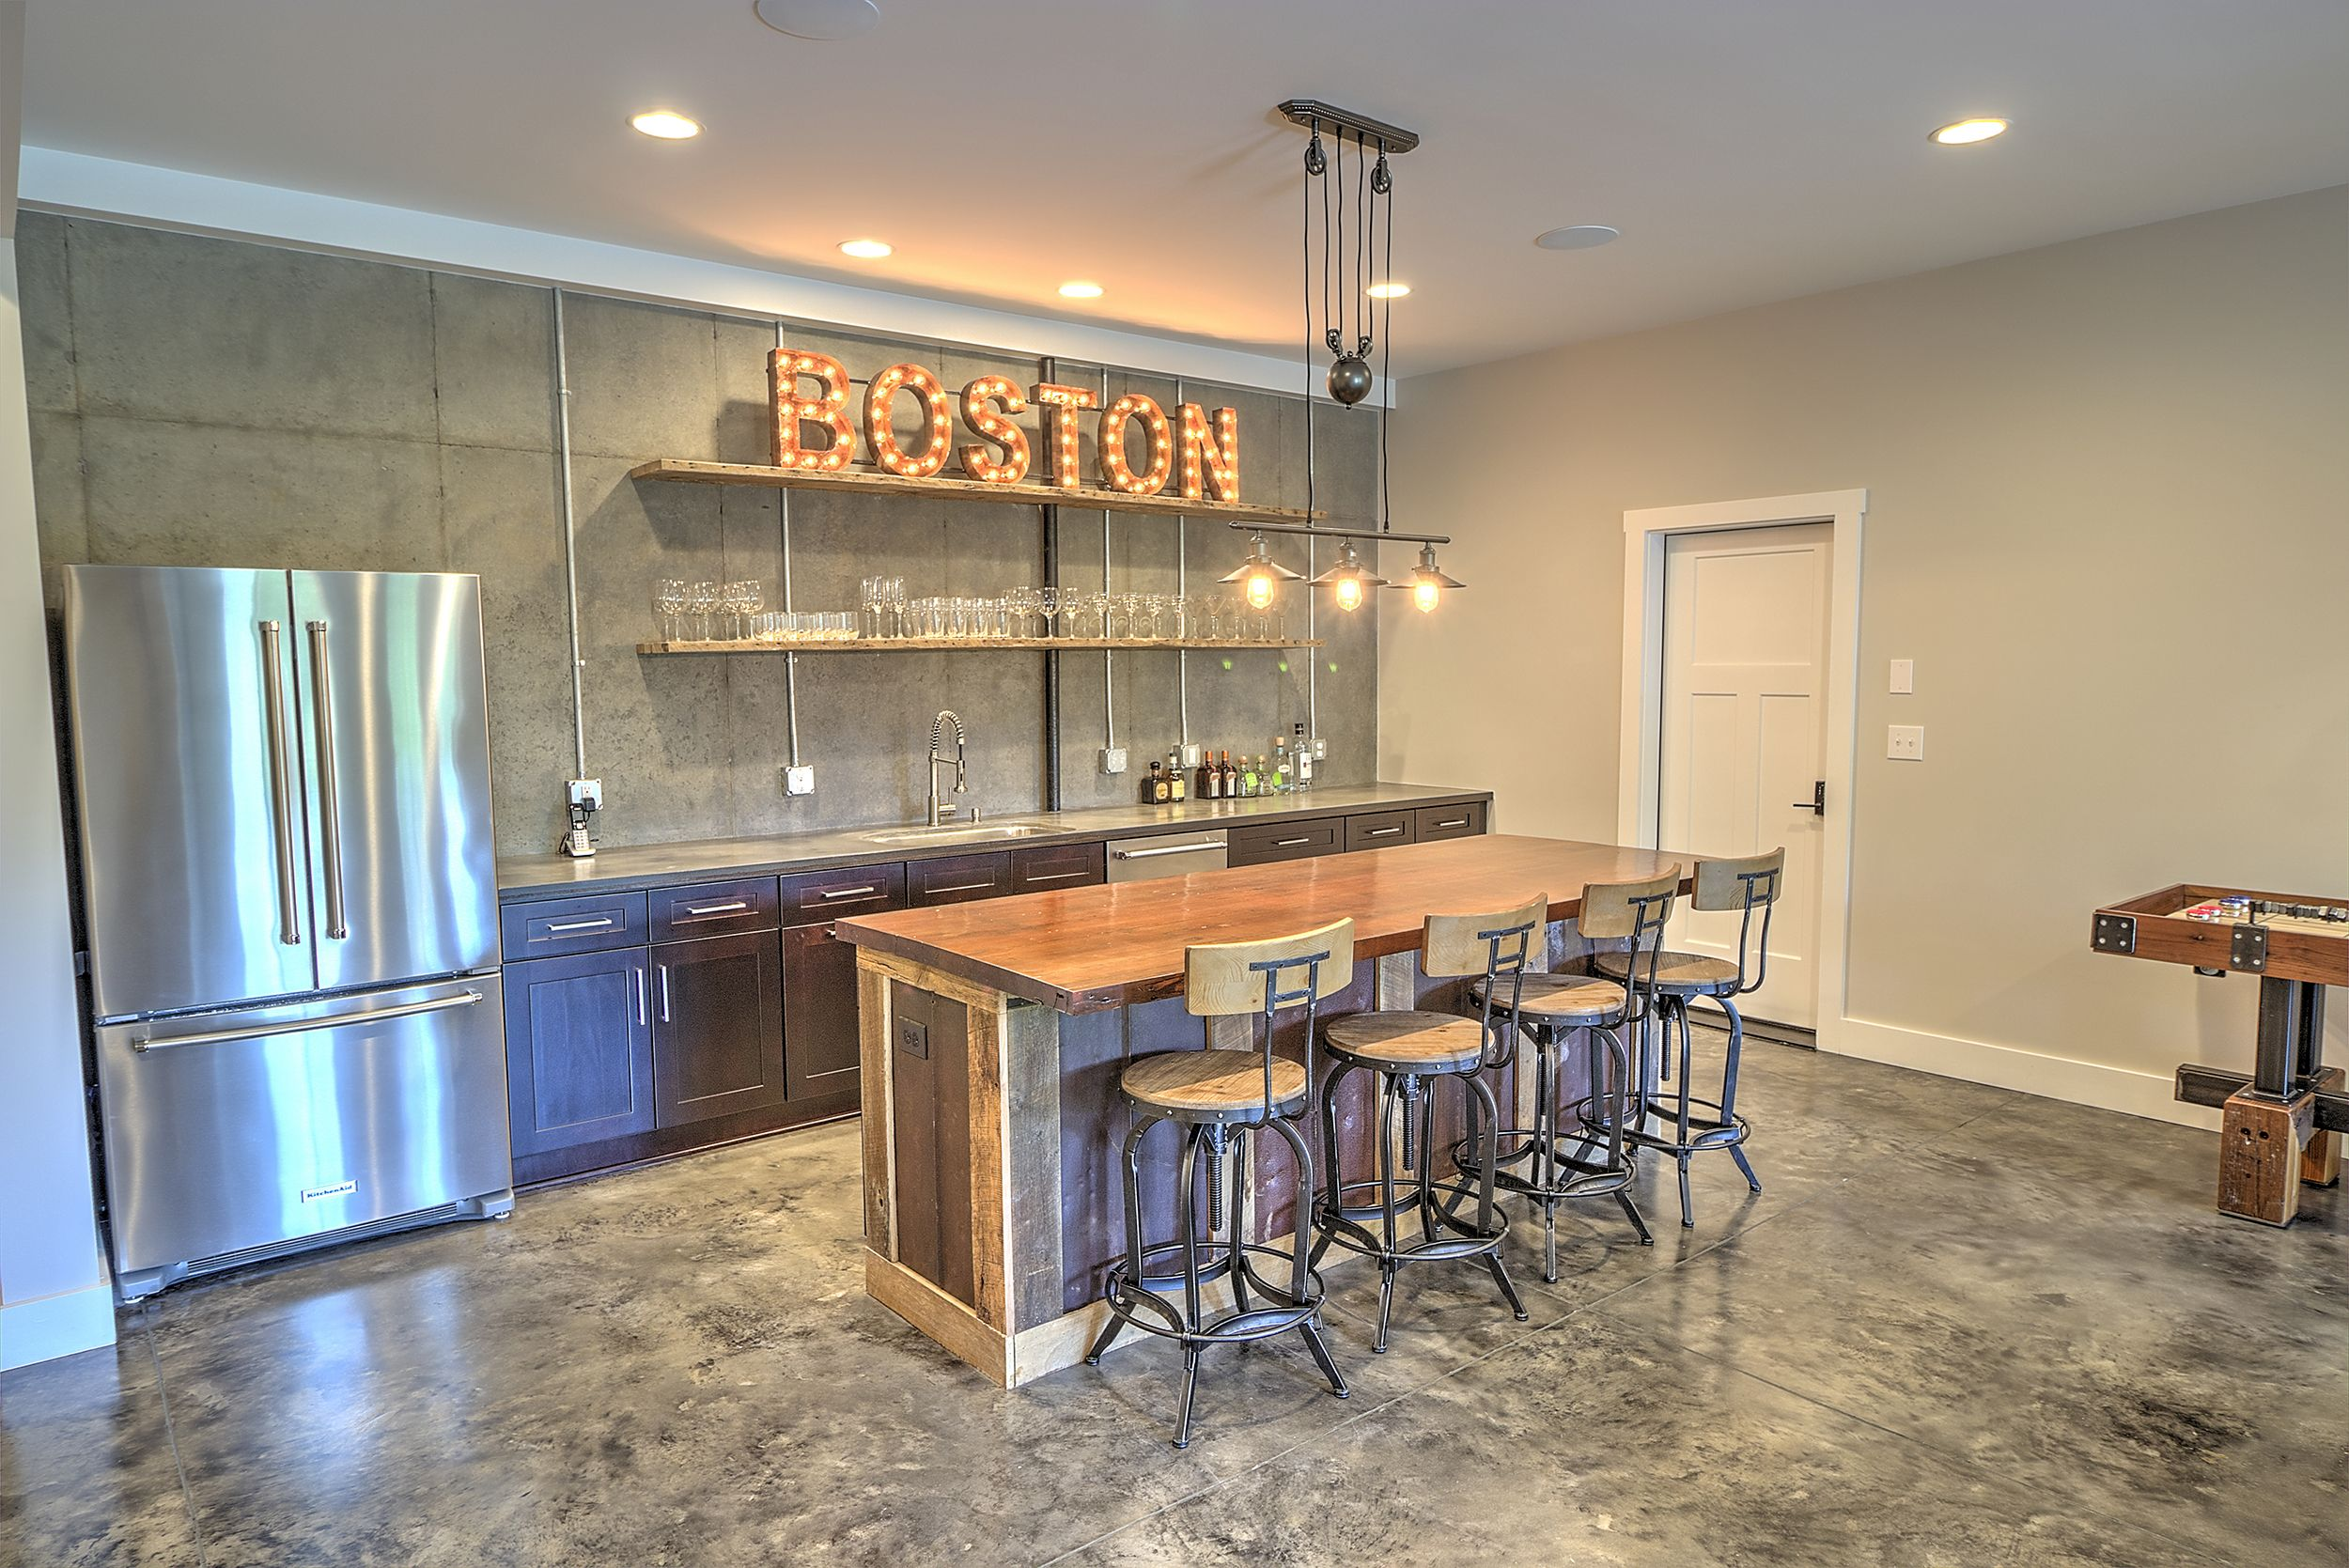 Modern Farmhouse Industrial, Reclaimed Wood Bar, Boston Sign, Concrete Floor